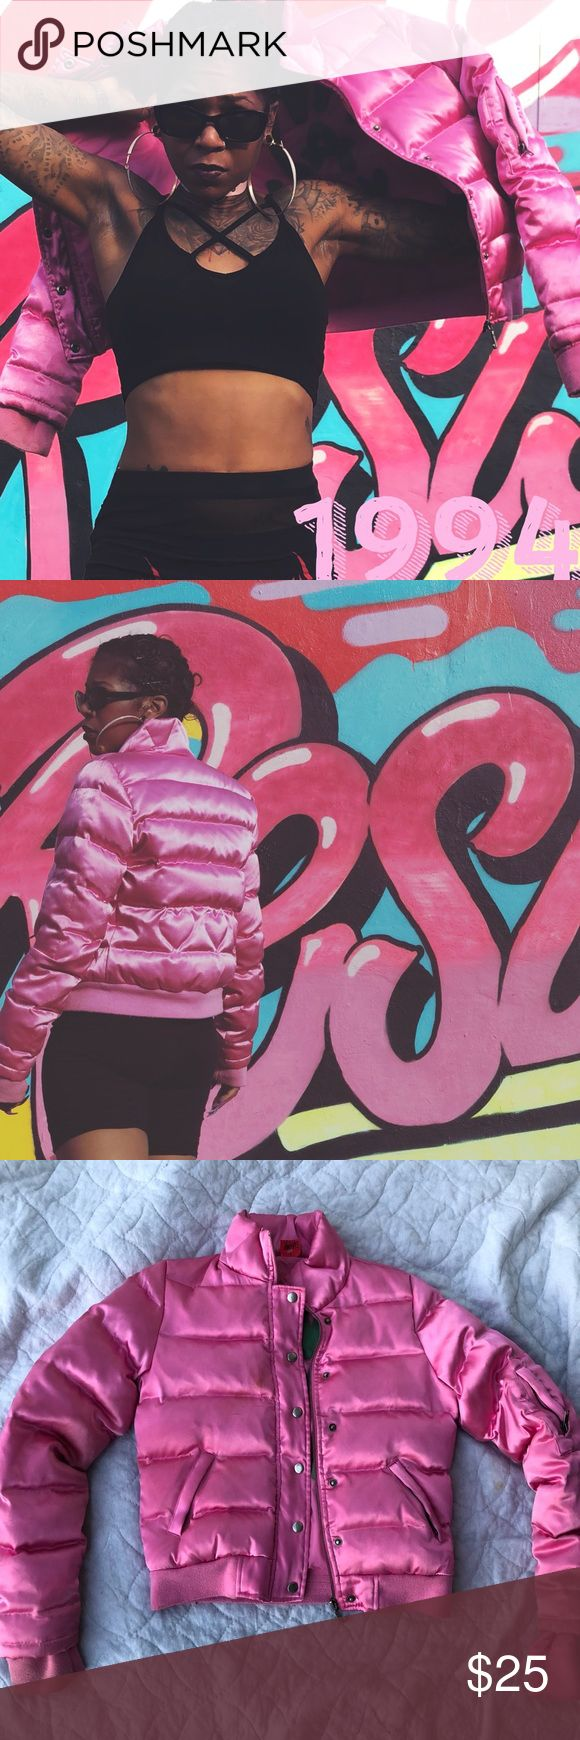 Vintage Pink Juicy couture bubble Jacket Juicy couture bubble jacket , size medium but snug fit also can fit small, nylon material, small ink pen mark on the front Juicy Couture Jackets & Coats Puffers